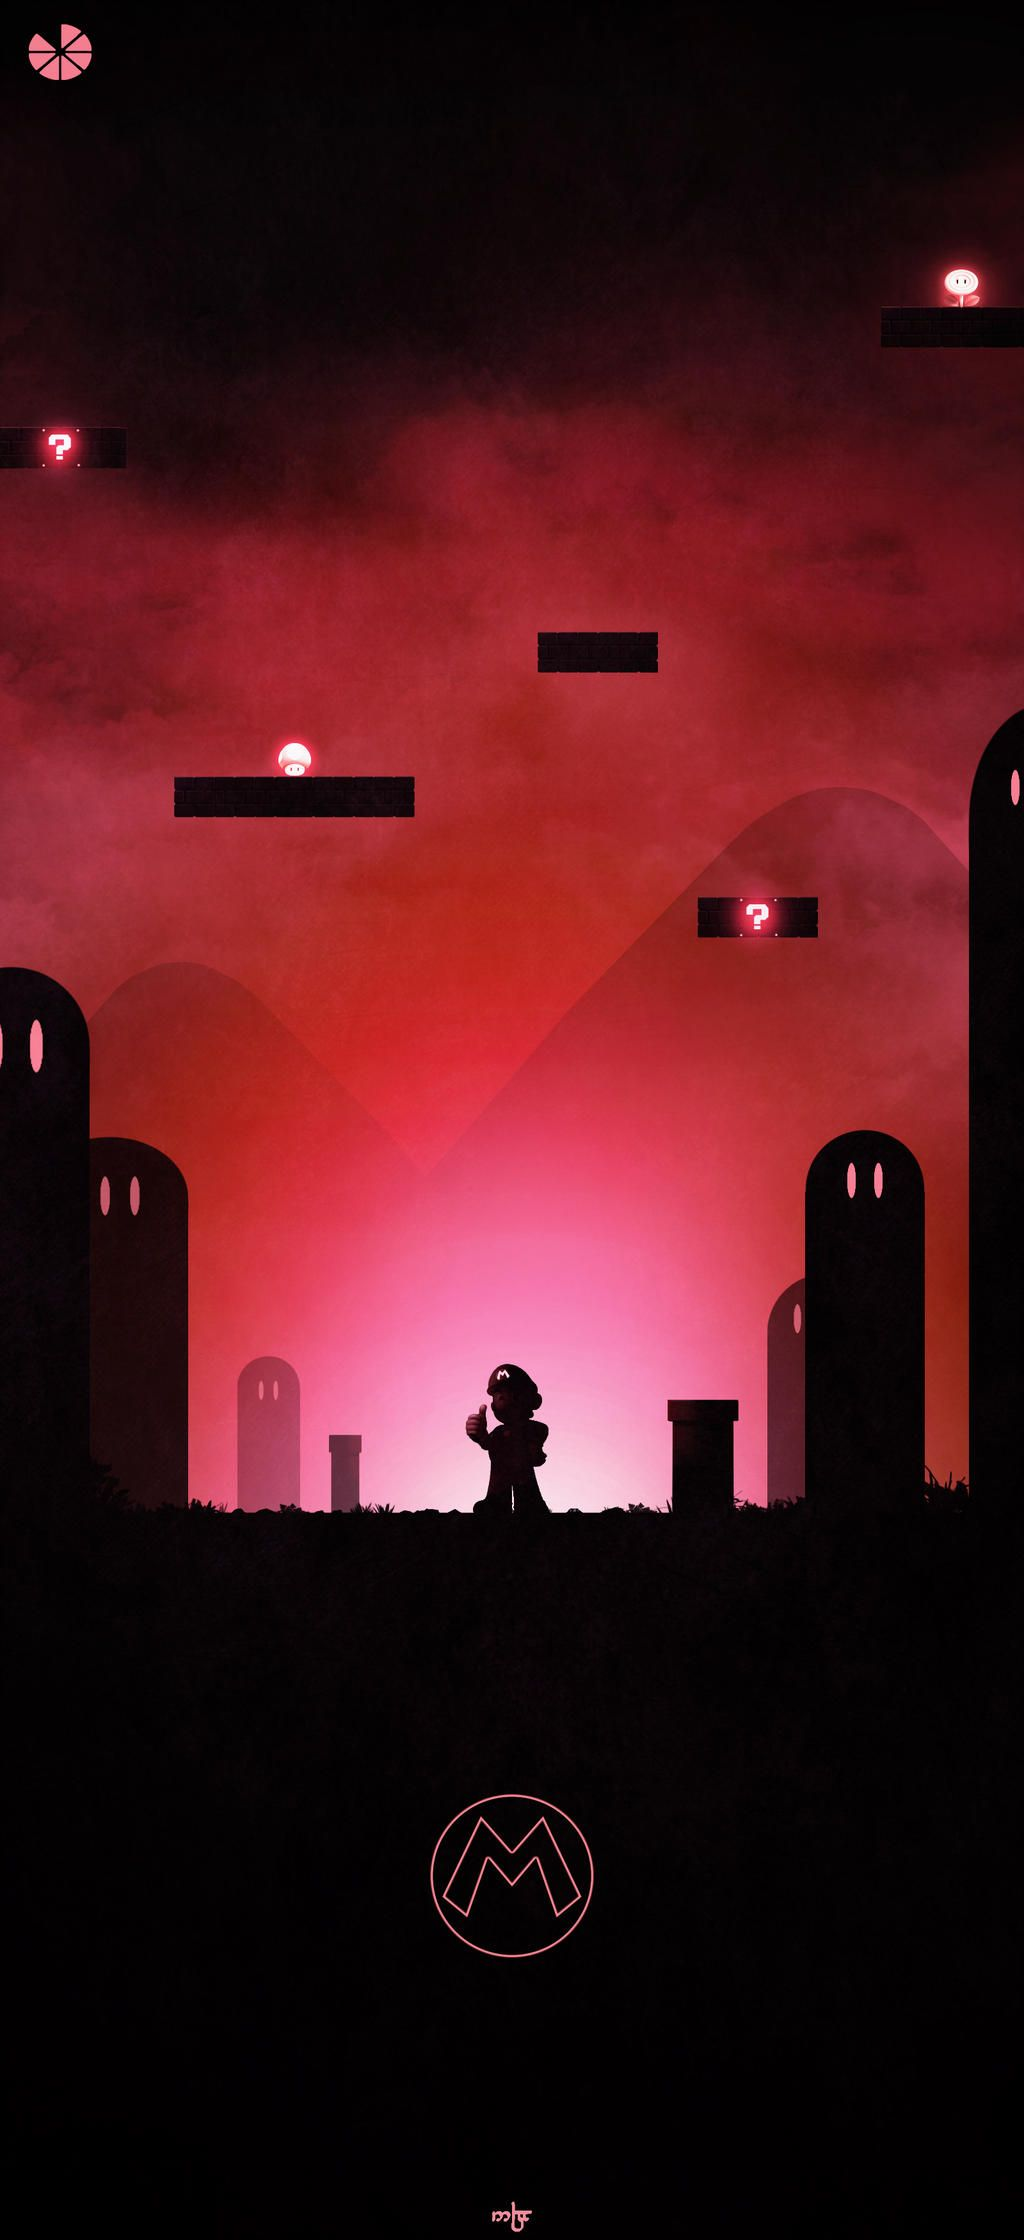 super mario by noble 6 on deviantart video game posters video games artwork video game characters